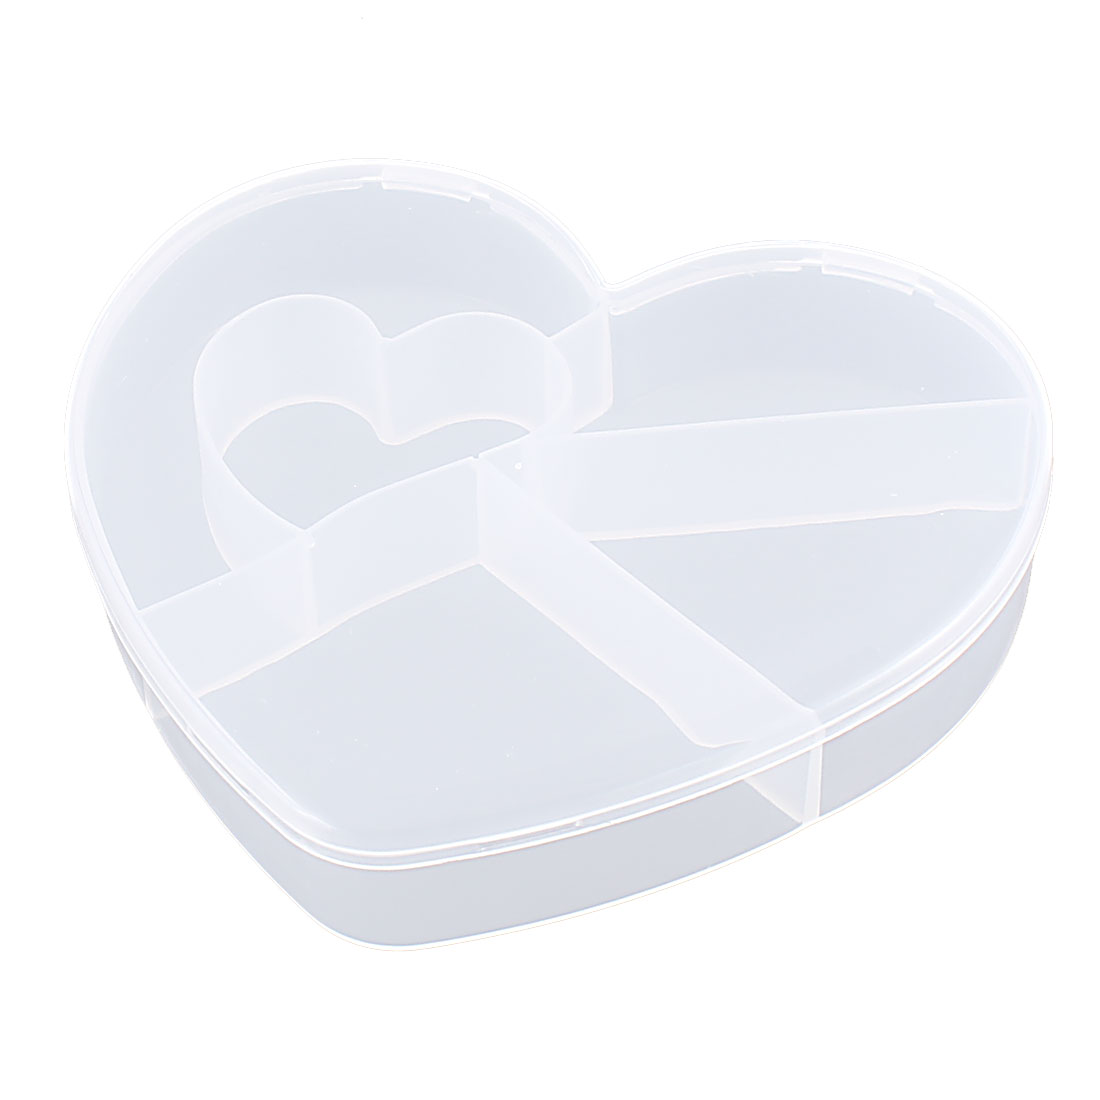 Medicine Plastic Heart Shaped 5 Slots Storage Box Case Organizer Container Clear